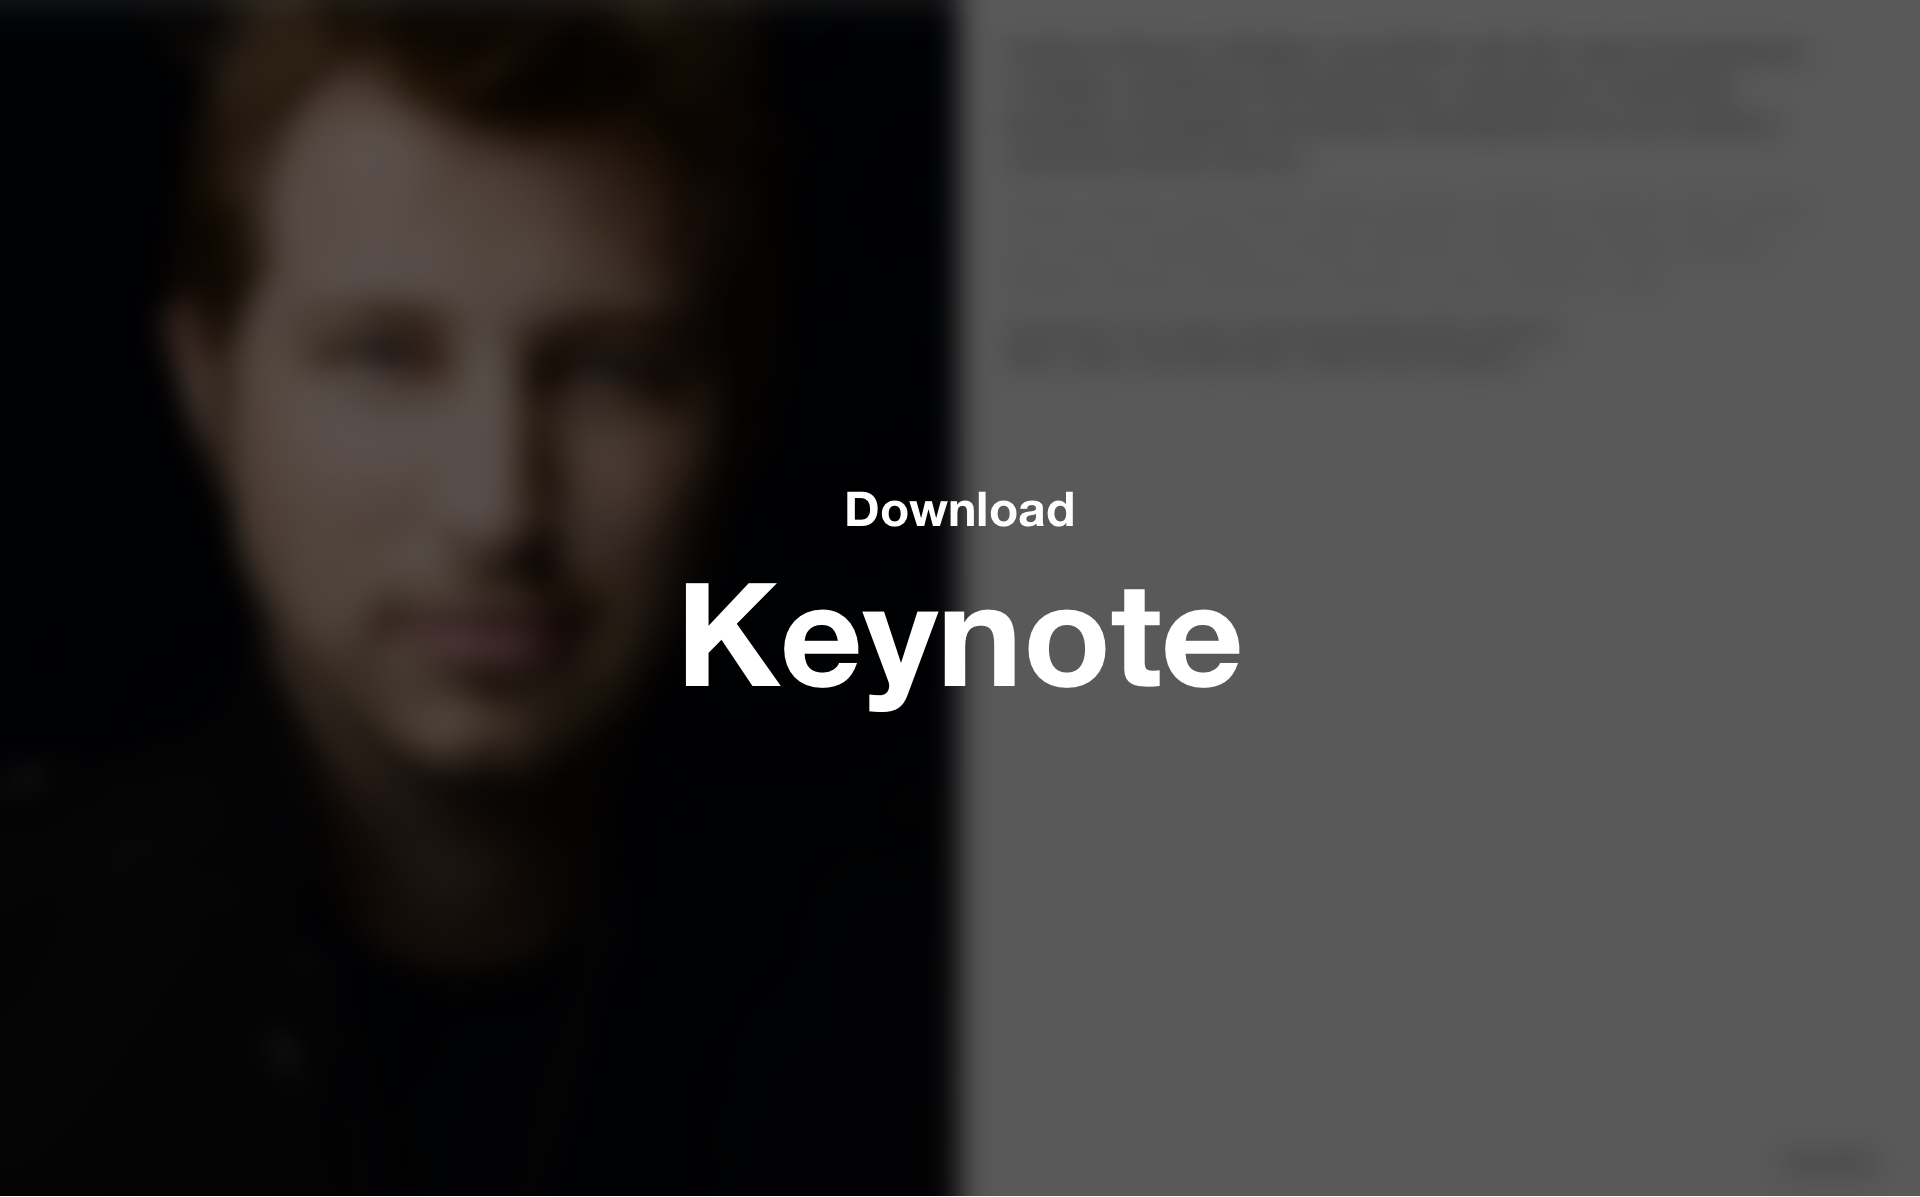 download-keynote.jpg